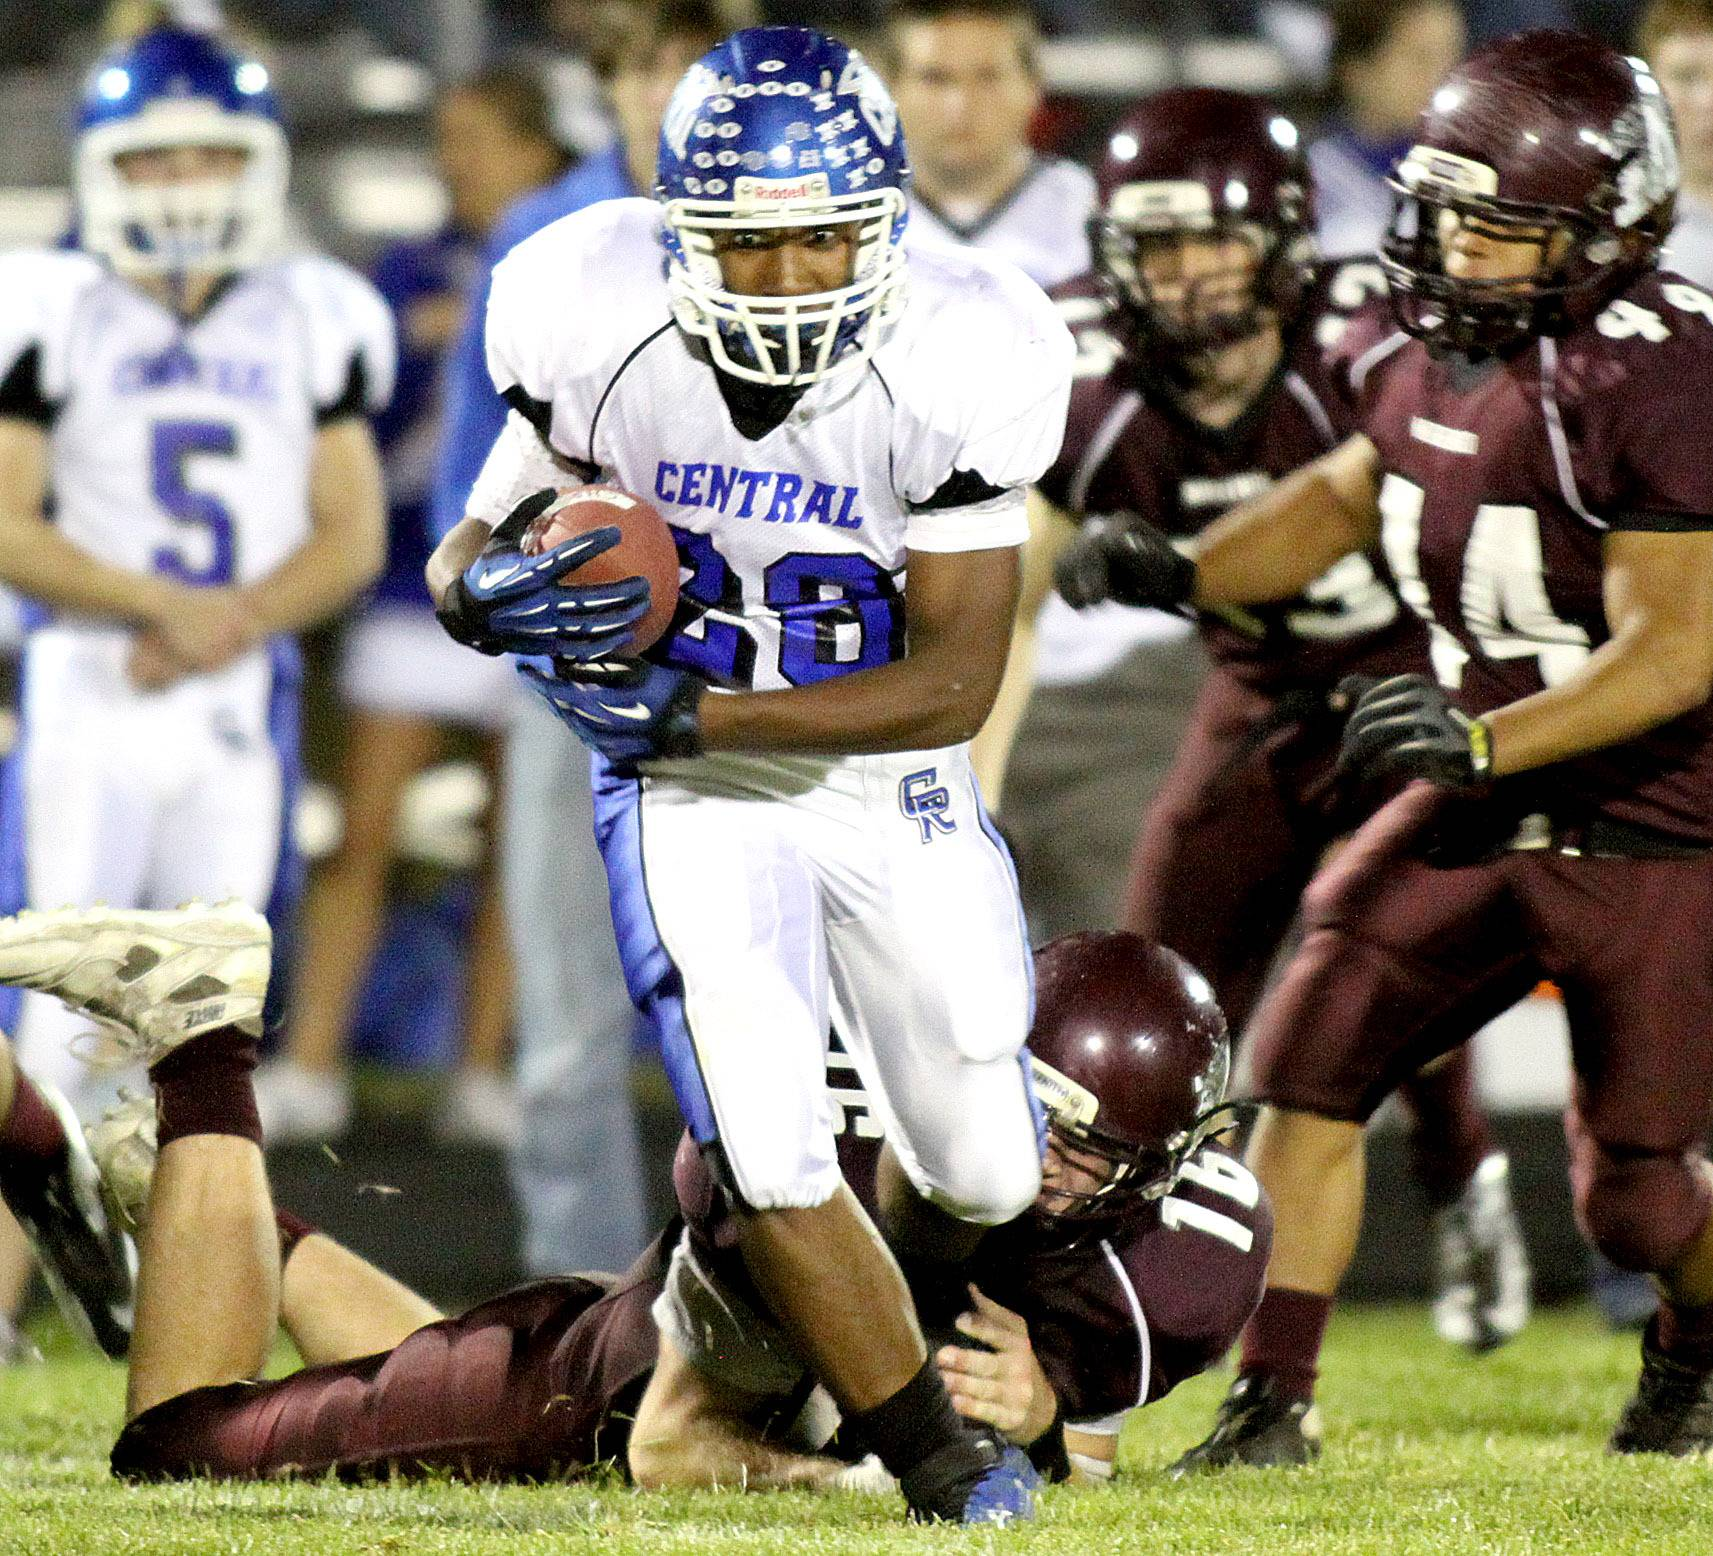 Burlington Central's  Trevor Davison will be relied on in the Rockets' backfield this season.